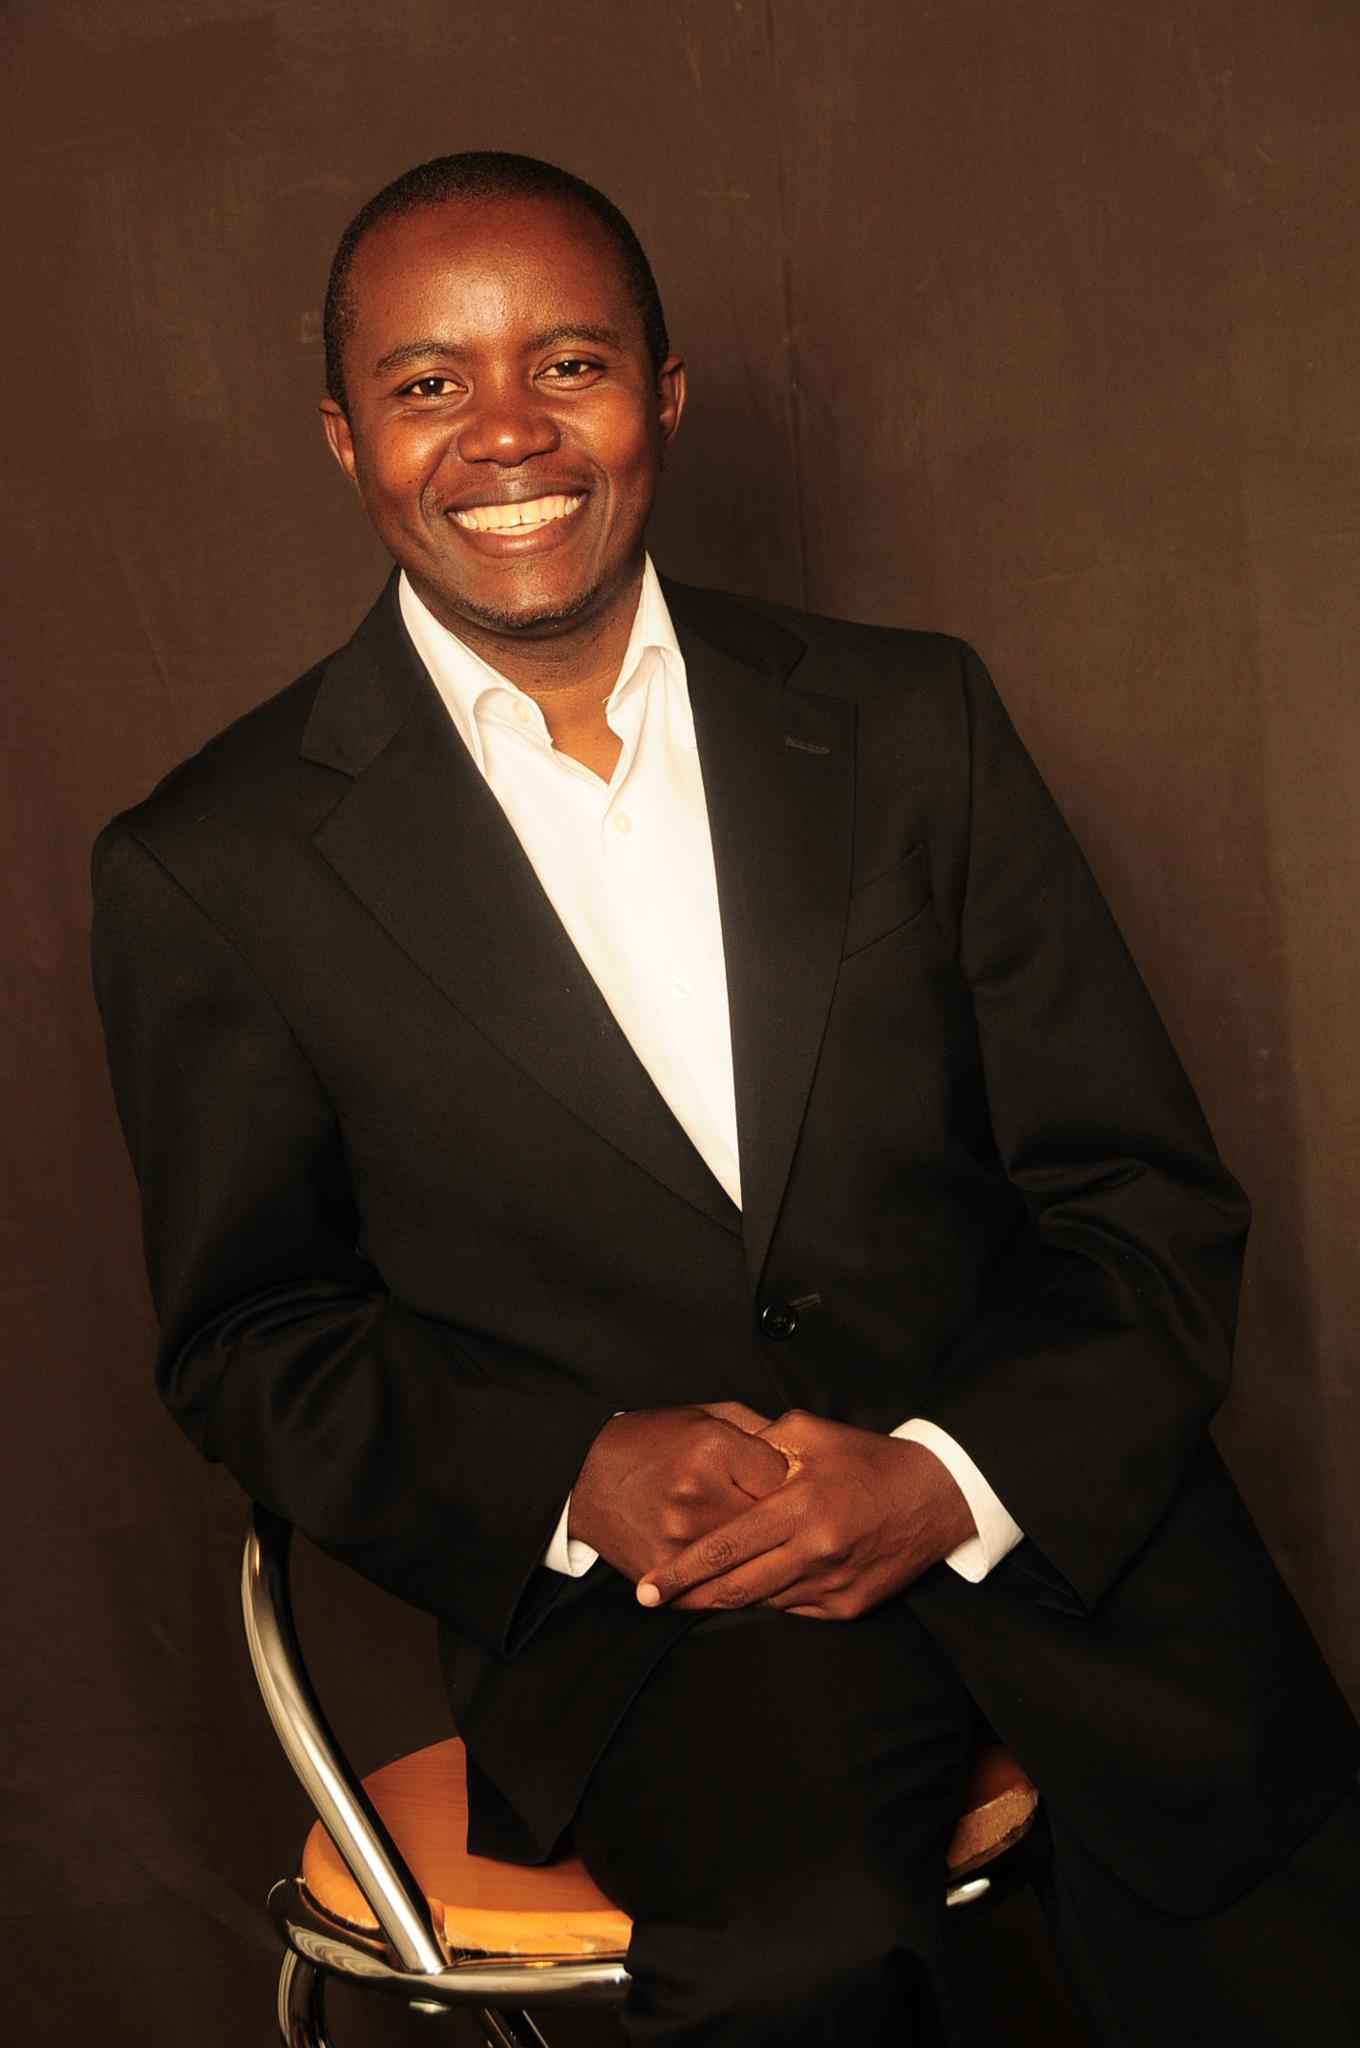 Image of Joe Mucheru